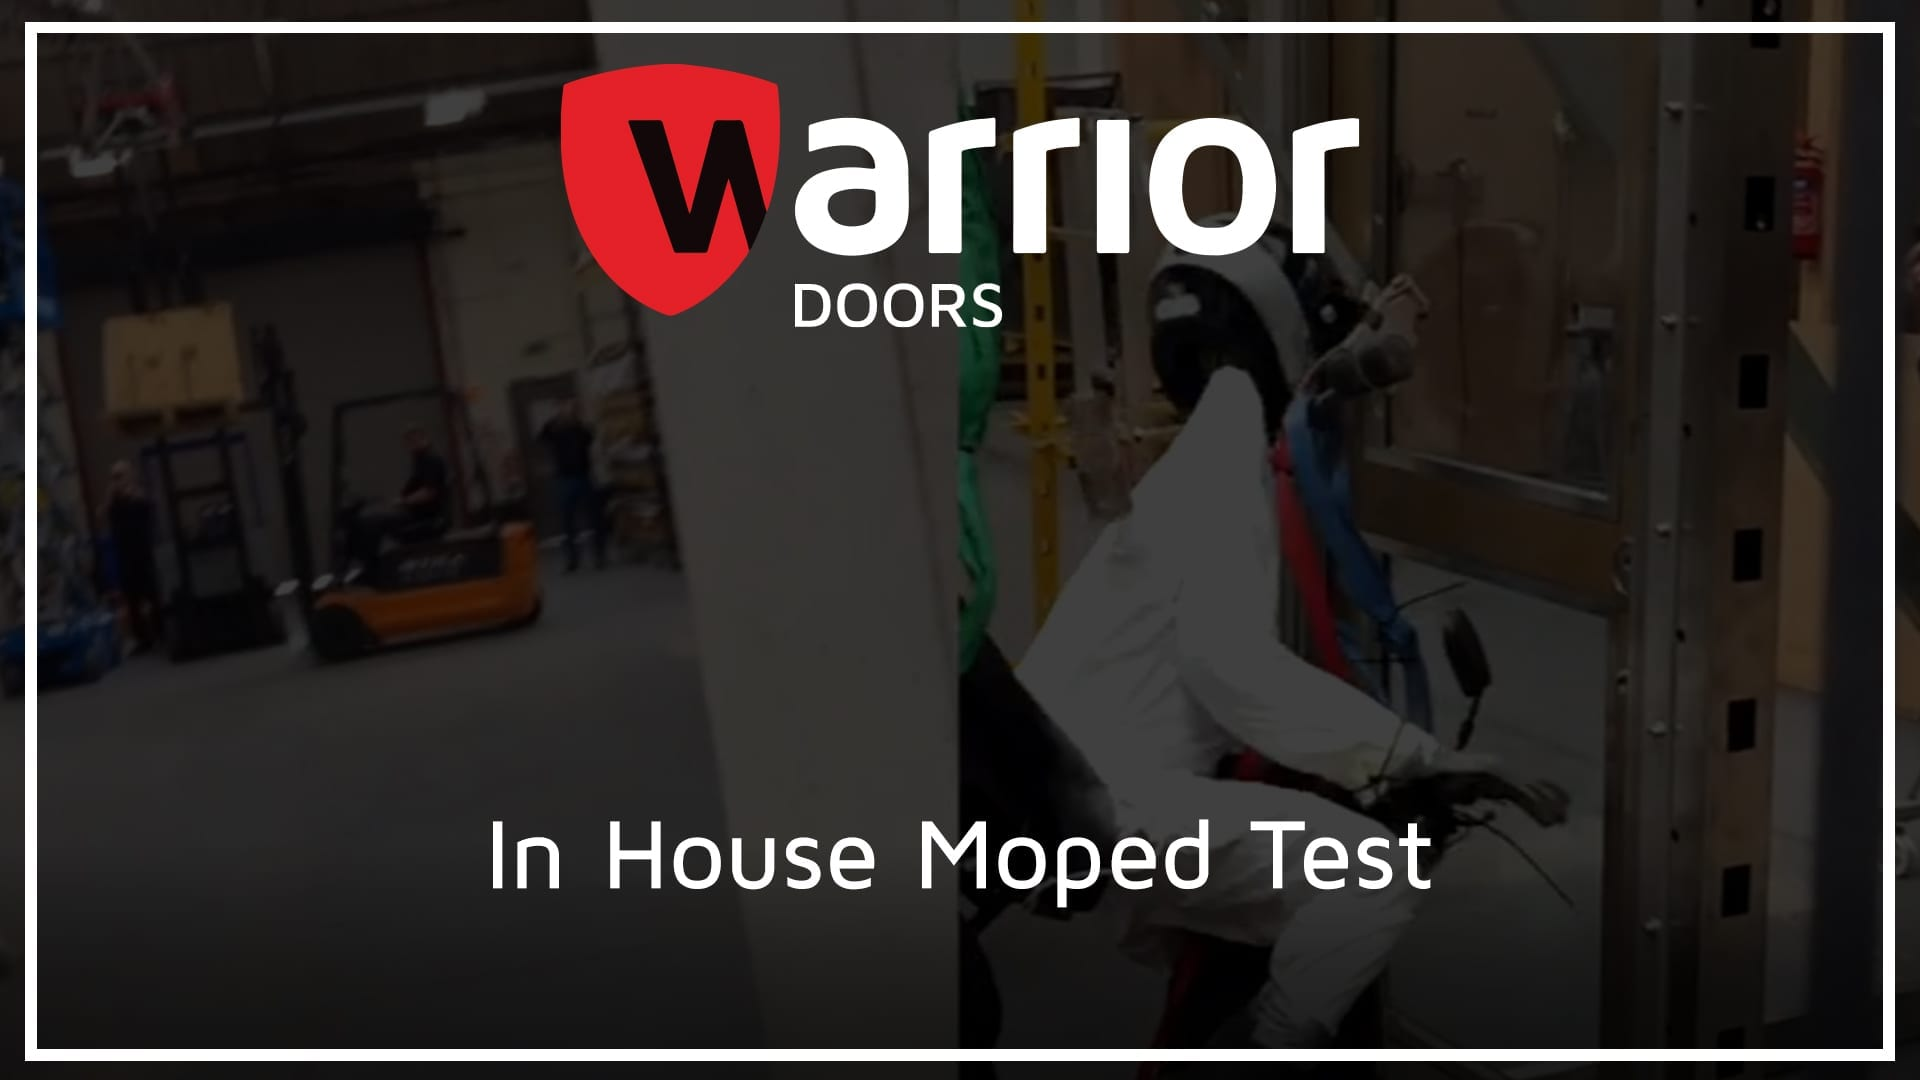 """dummy on a moped driving into a door with Warrior Doors logo and text reading """"In House Moped Test"""""""